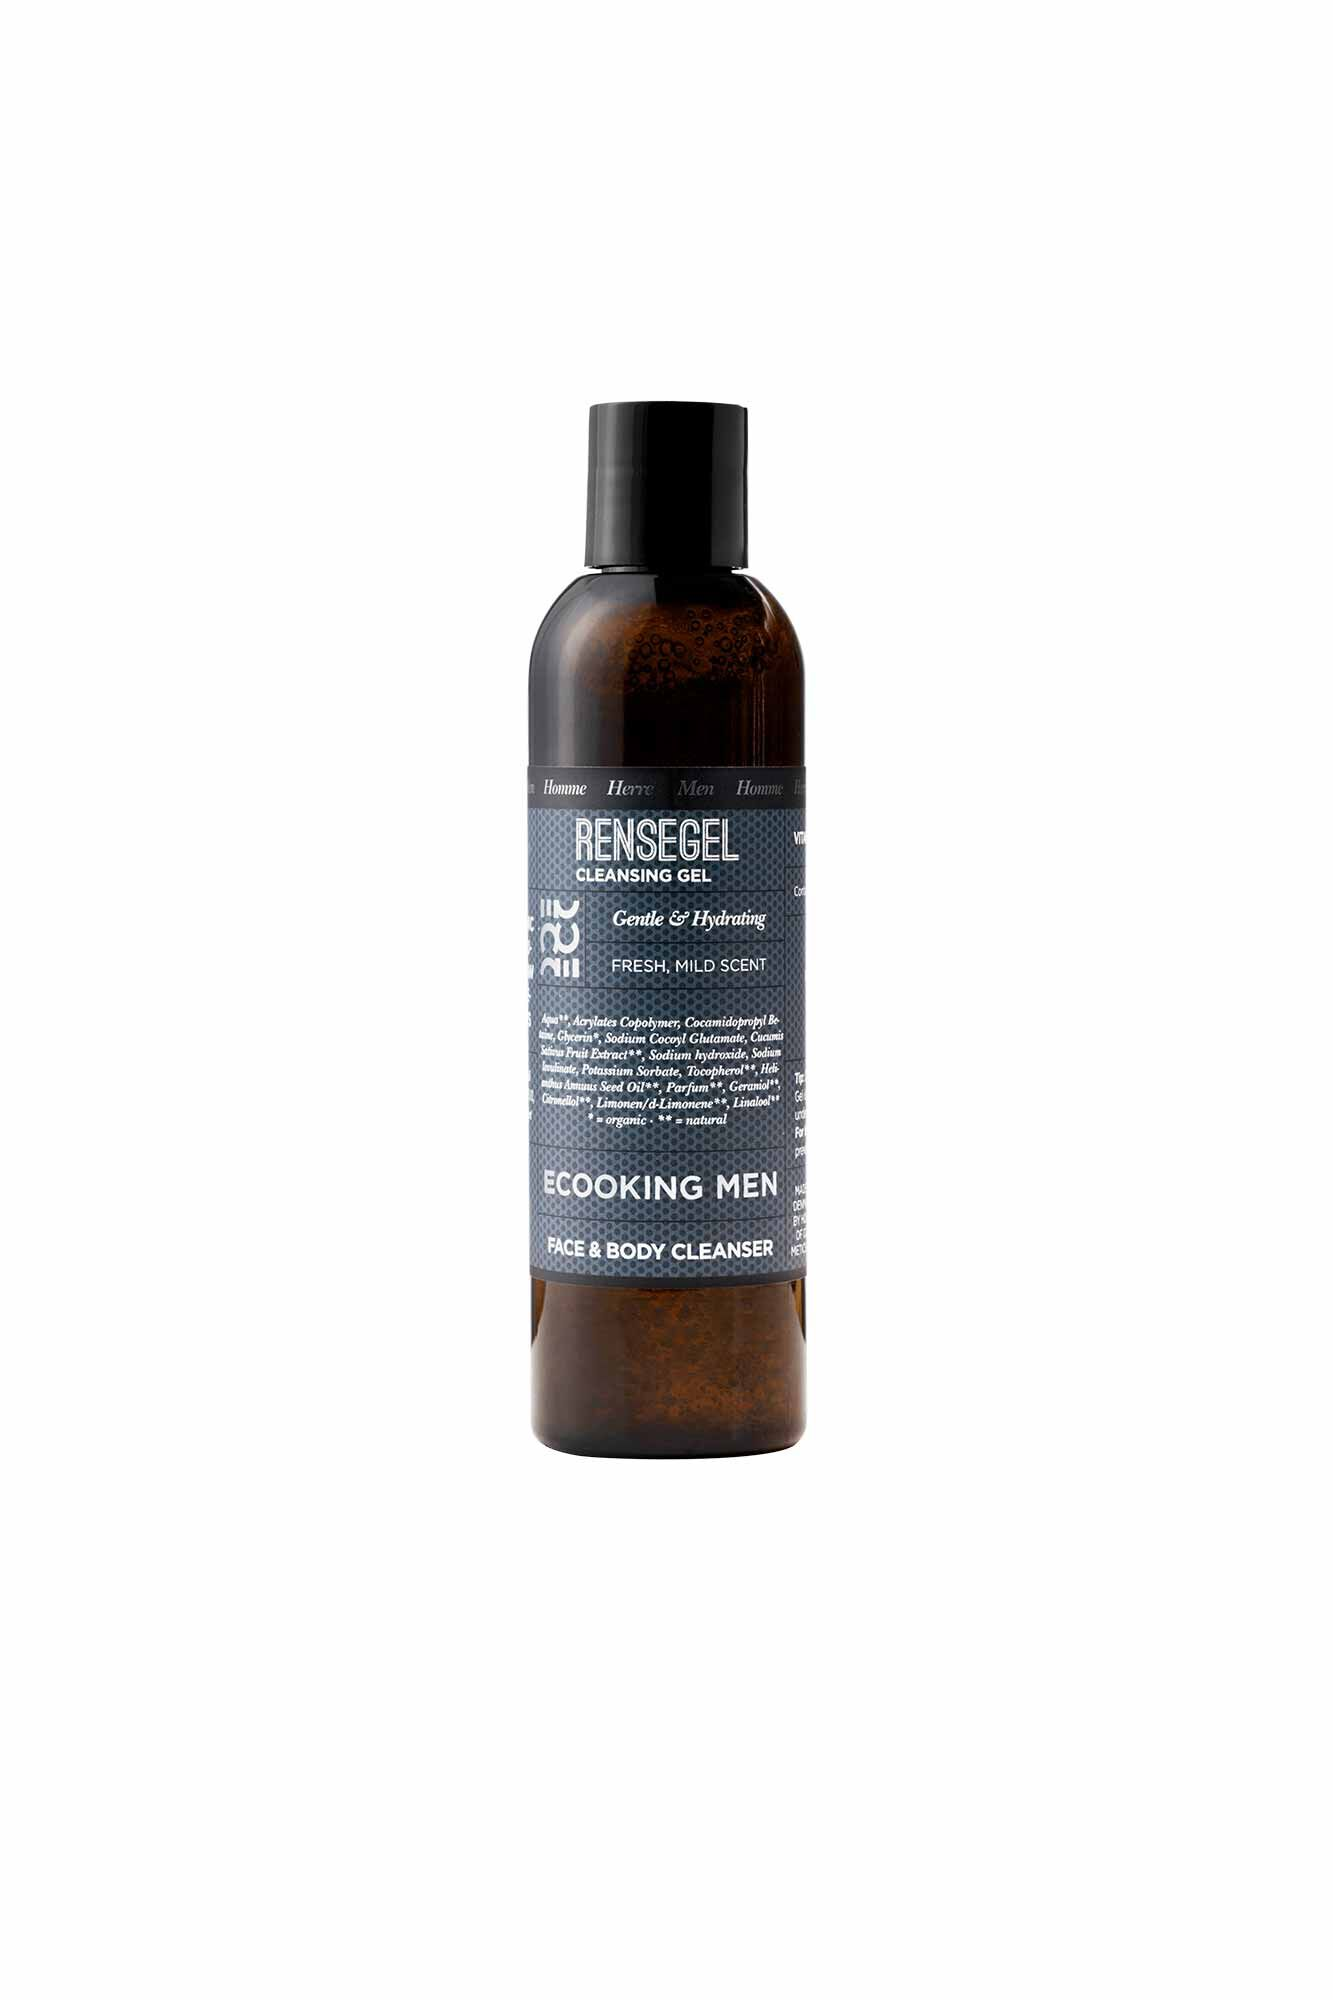 Rensegel 55603, 200 ML